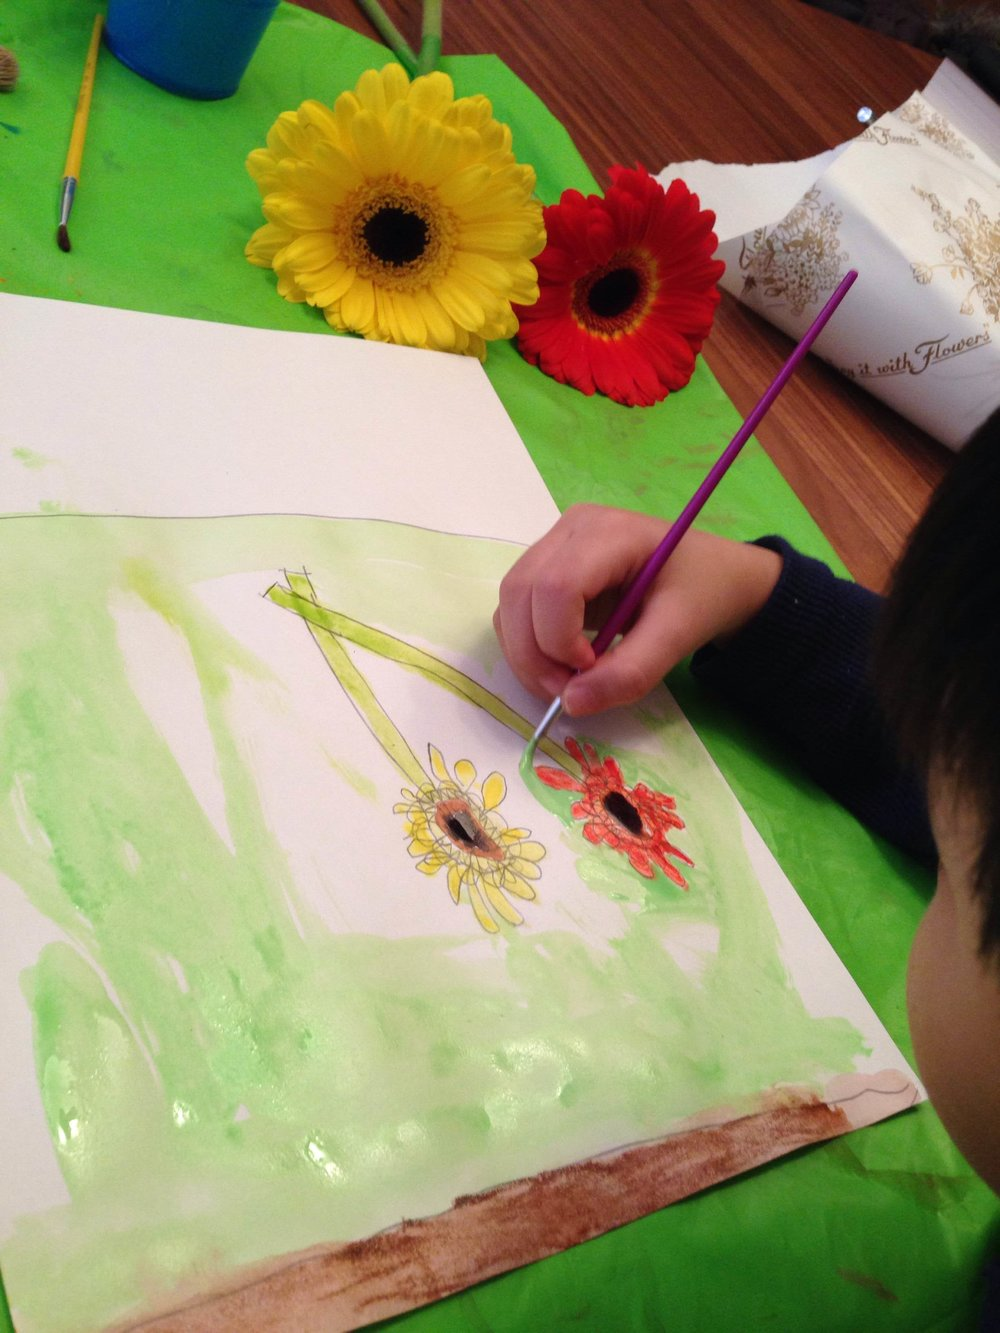 Observational drawing and watercolor paintings of flowers.